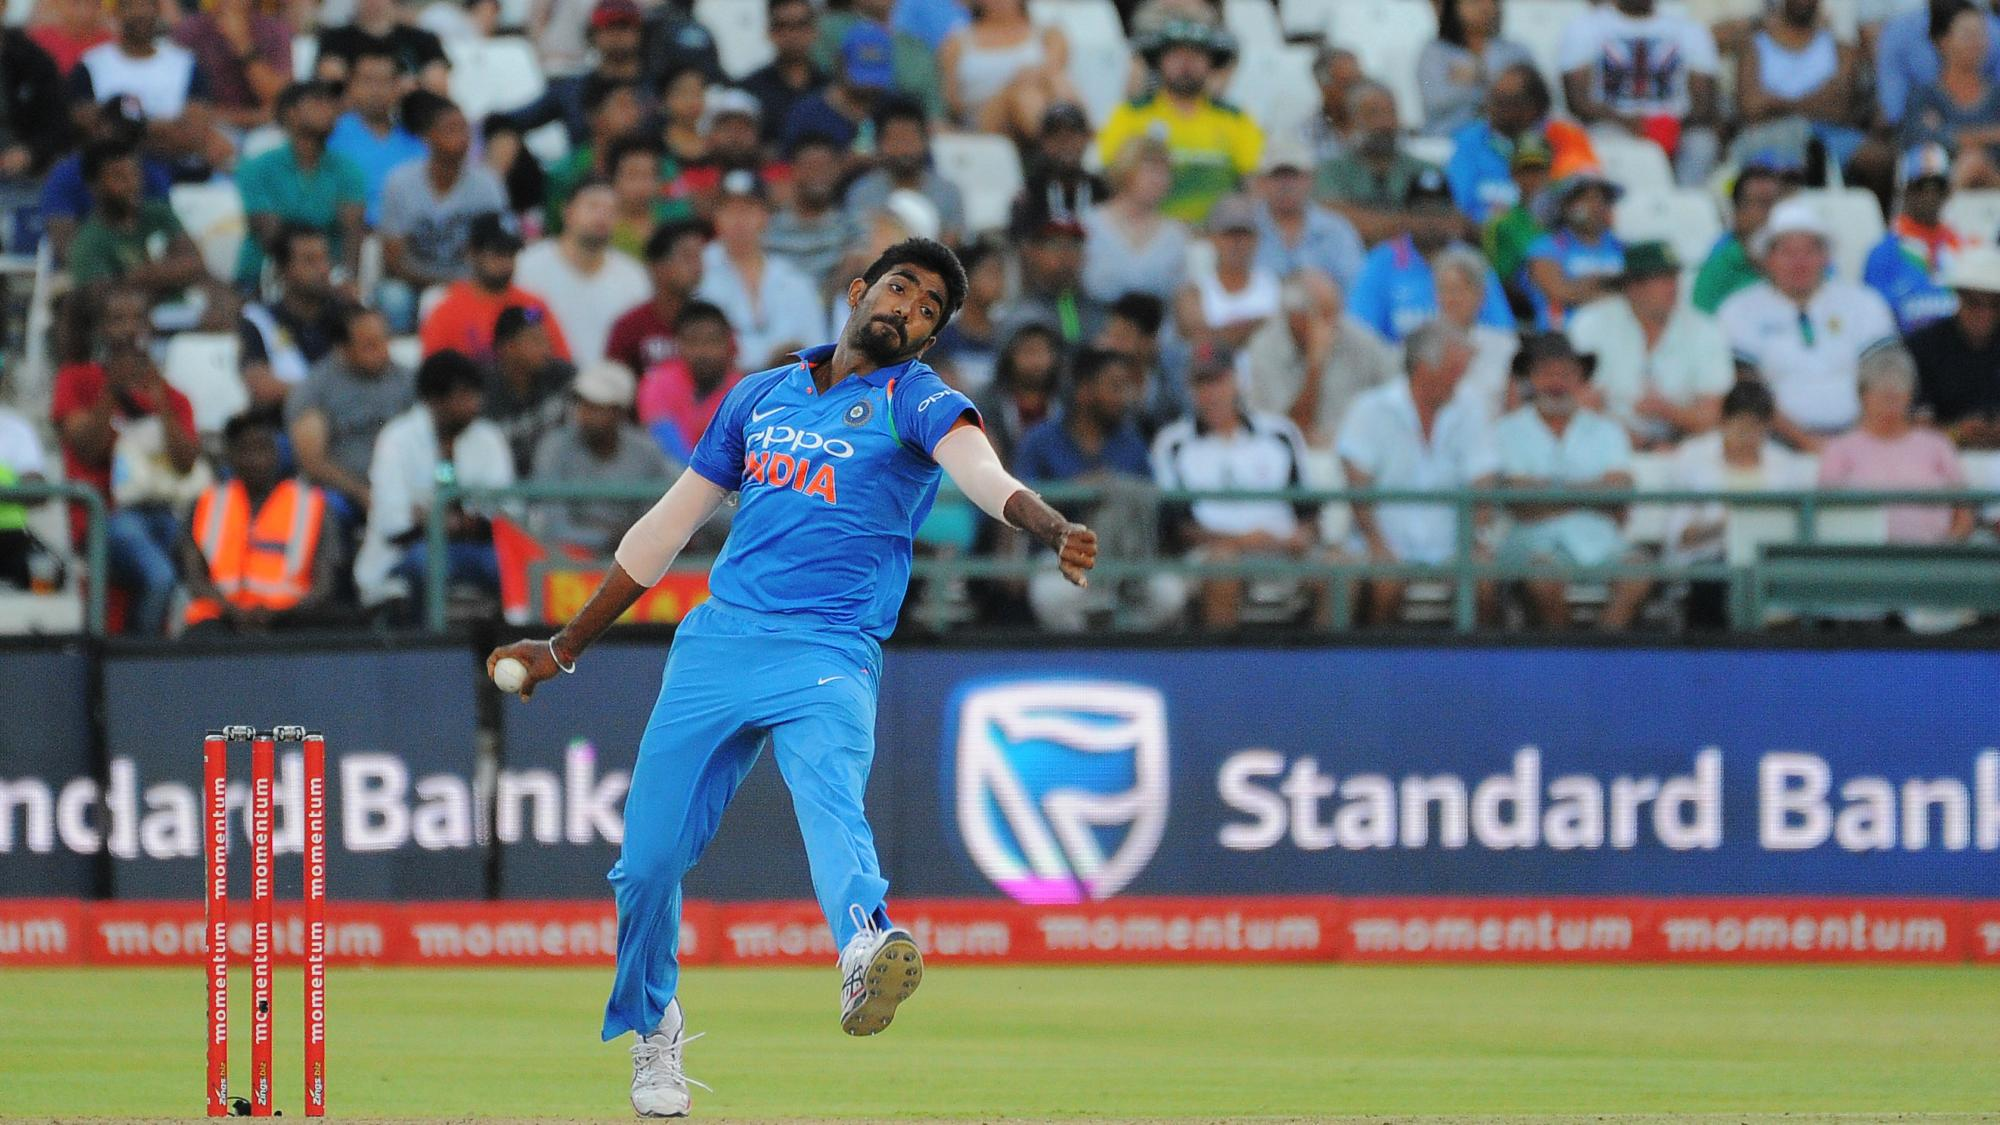 'Bumrah-powered India well placed for World Cup' – Jason Gillespie